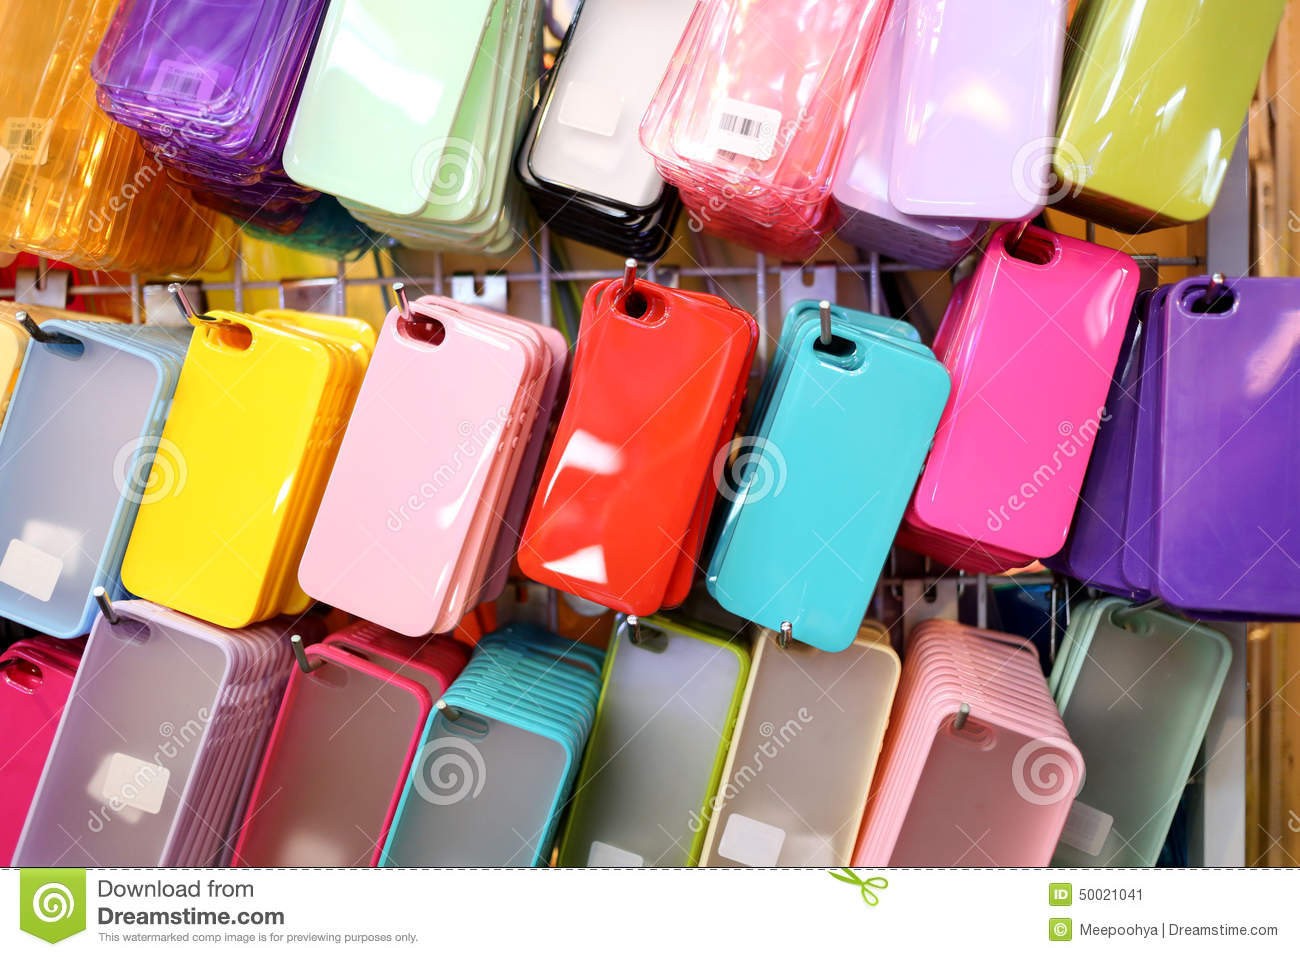 Phone case. stock image. Image of cell acb0d31e5c25